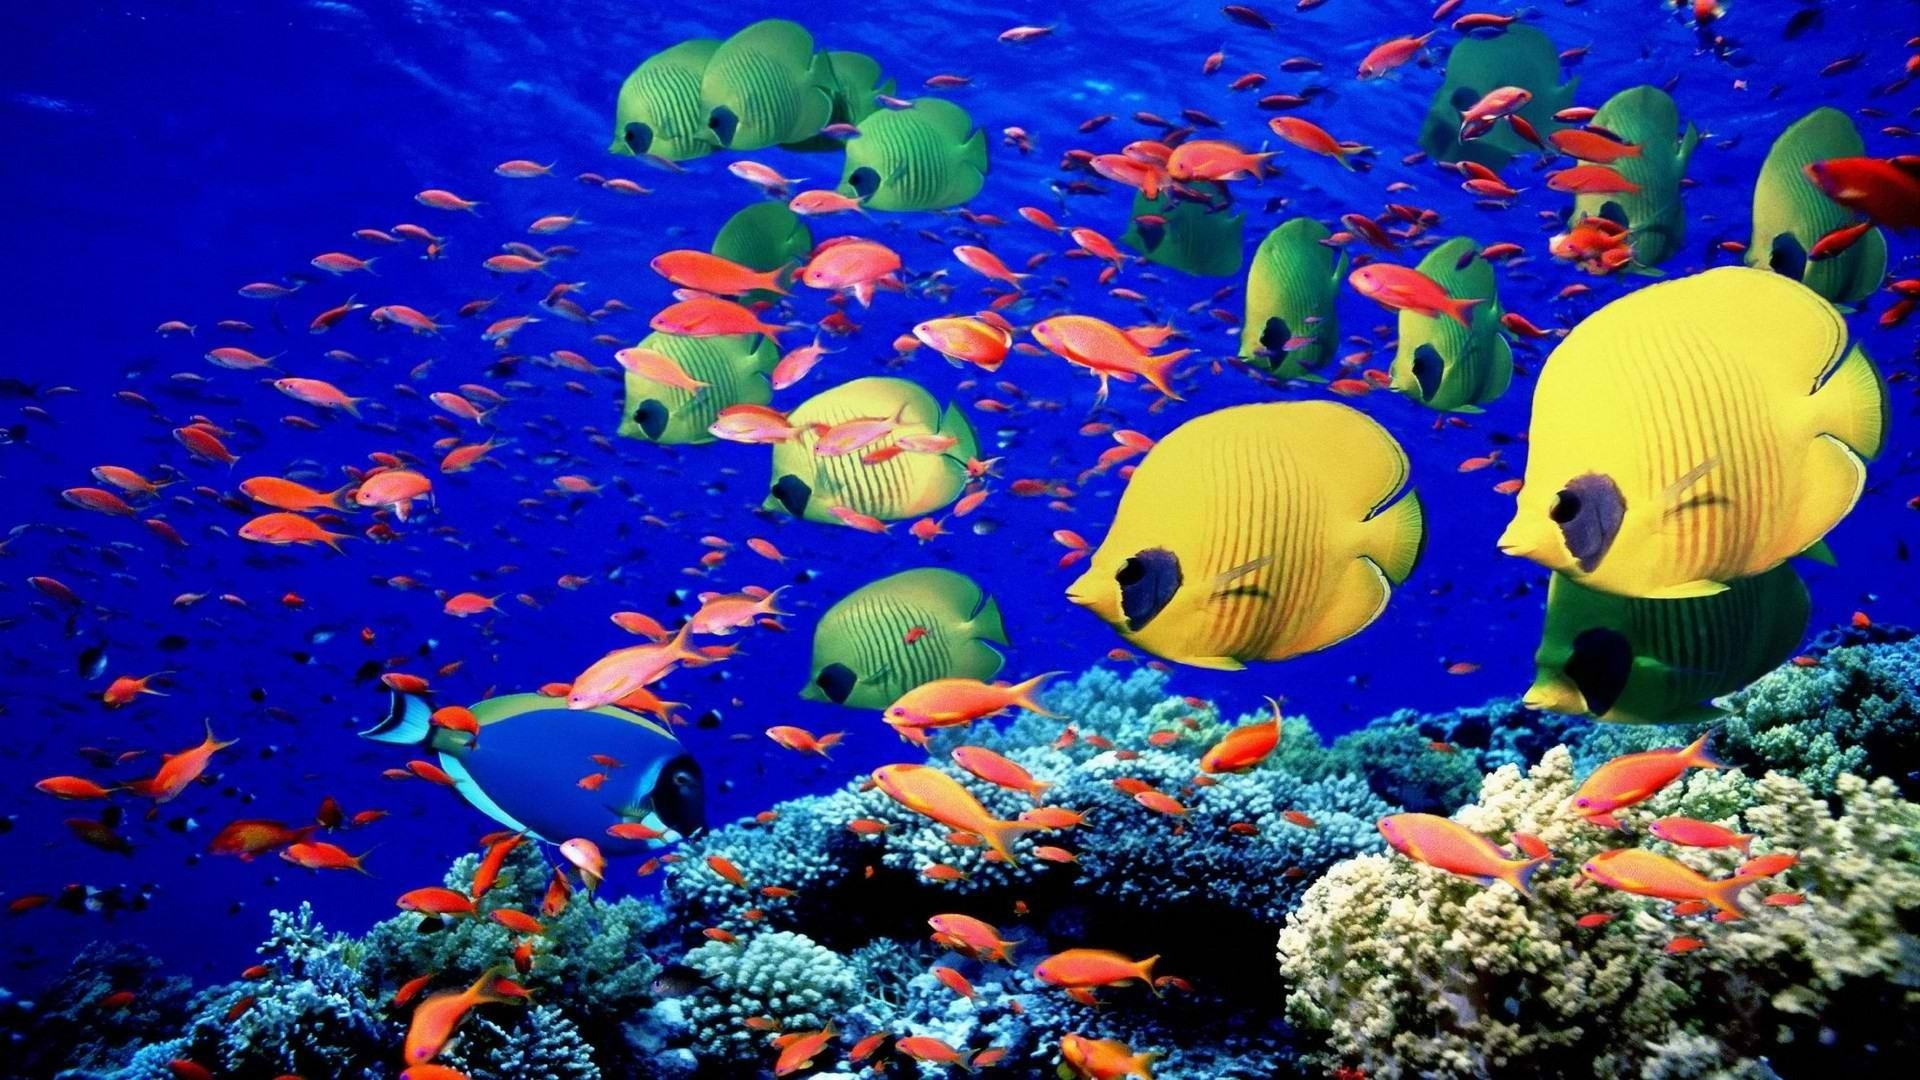 Coral Reef Wallpaper 1 Download Free Amazing Full HD Backgrounds